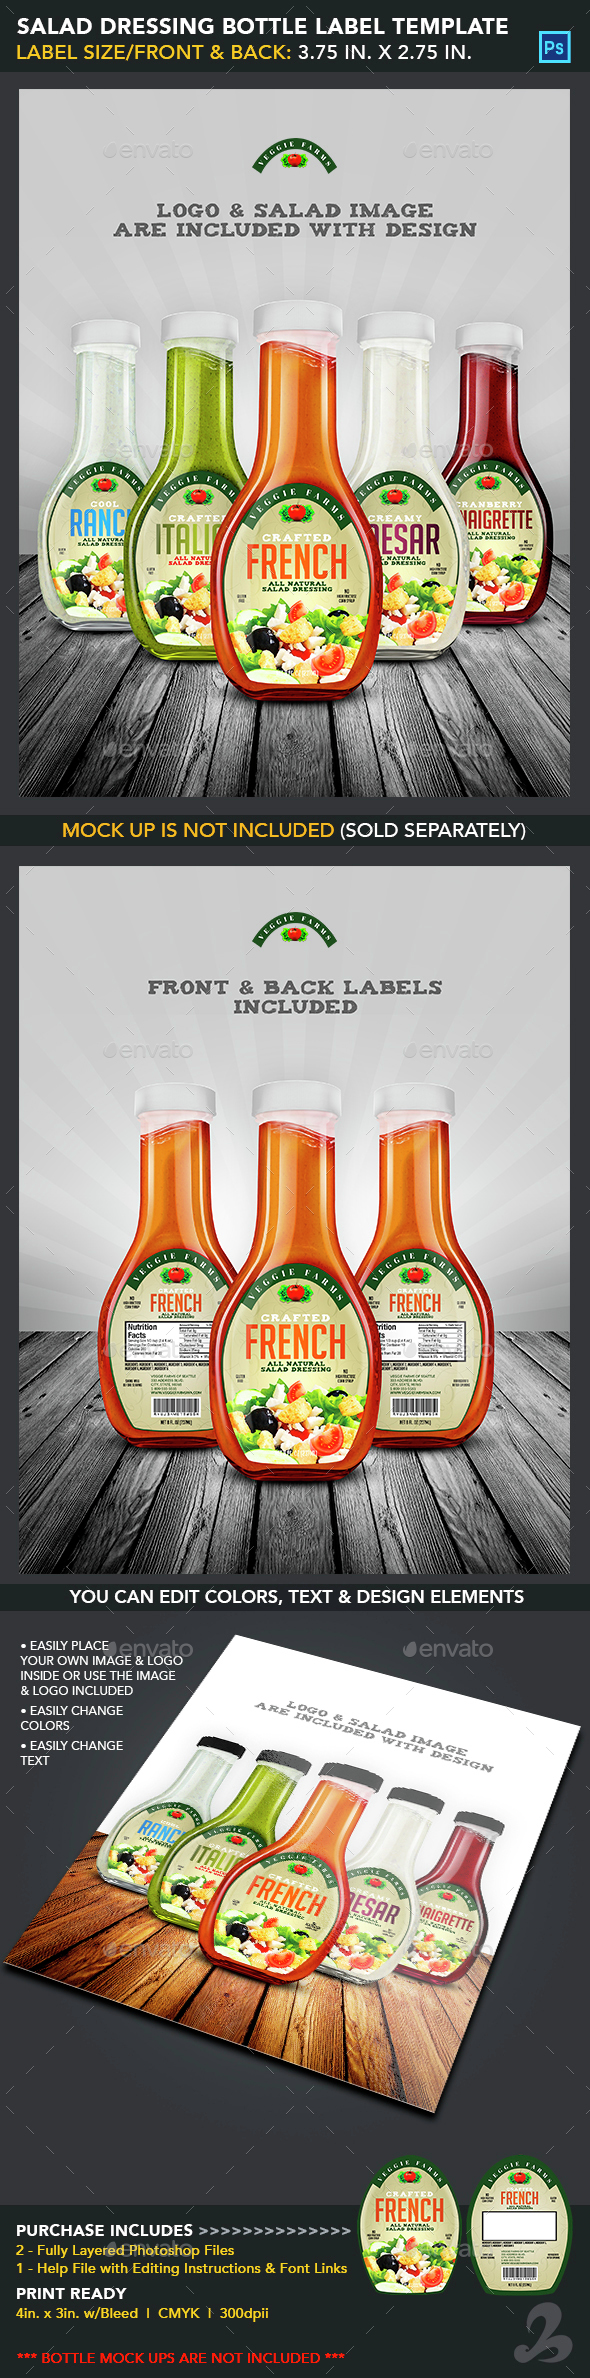 Salad Dressing Bottle Label Templates - Packaging Print Templates